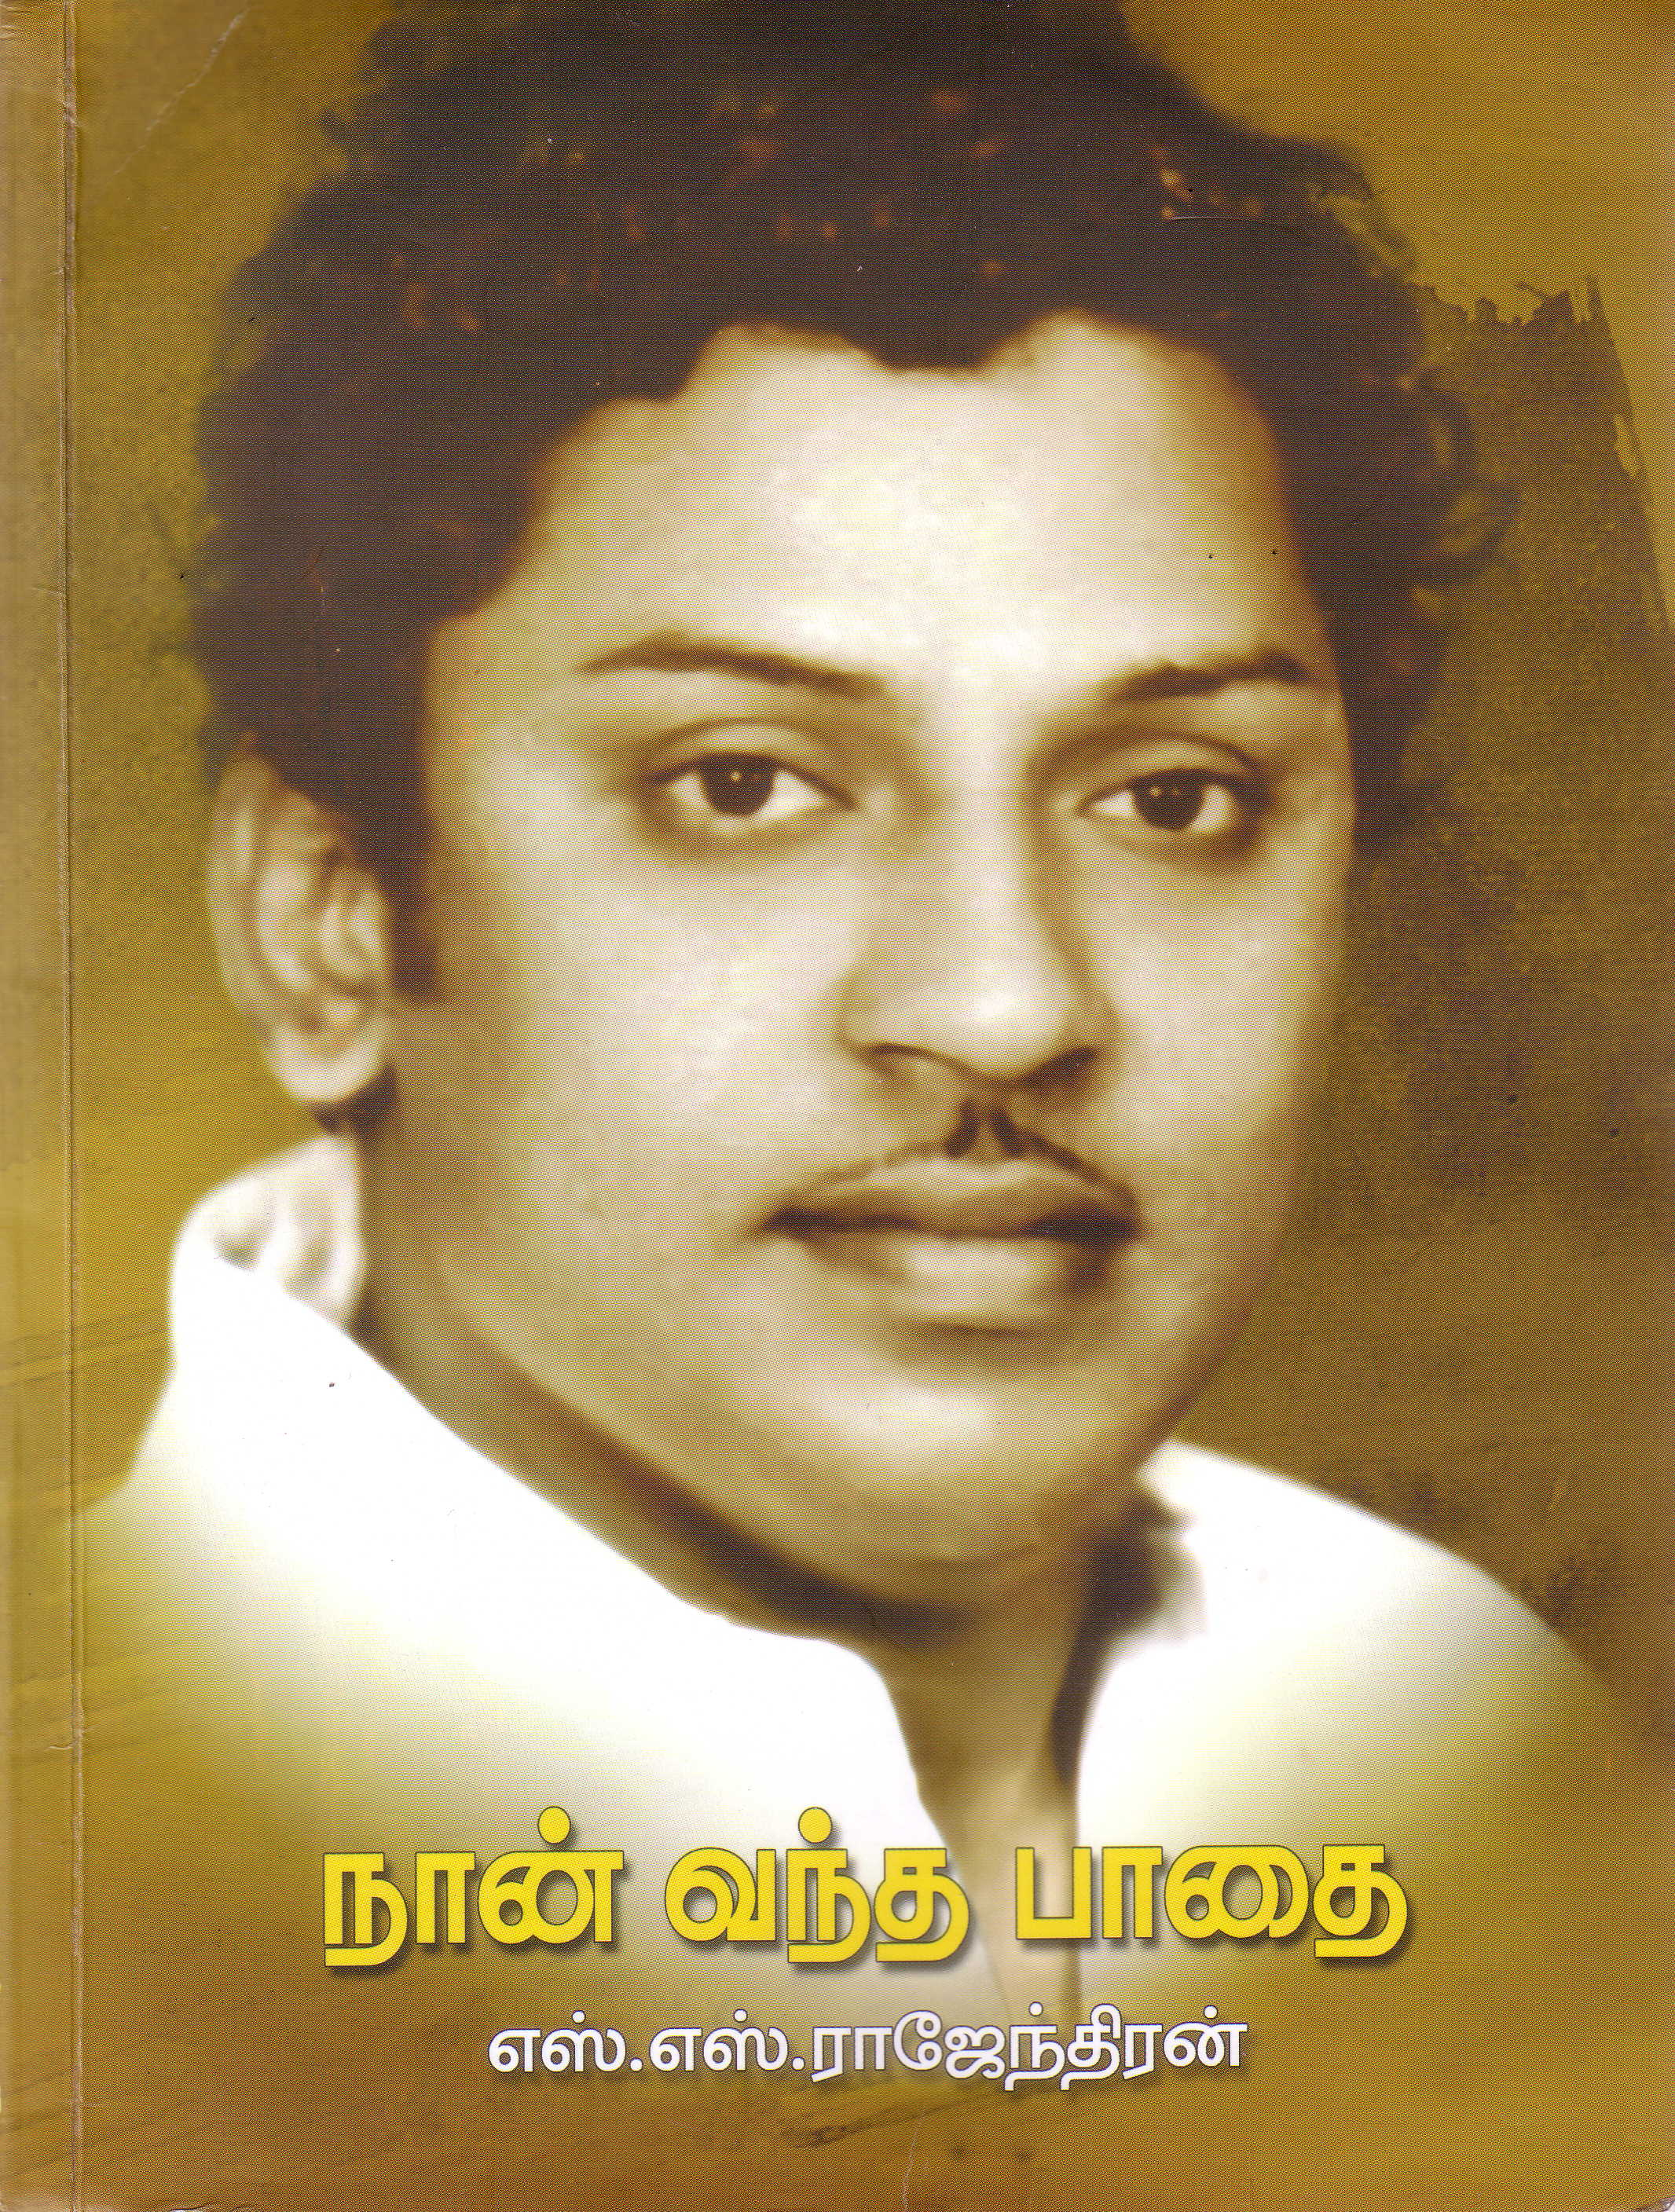 SSR autobiography book cover